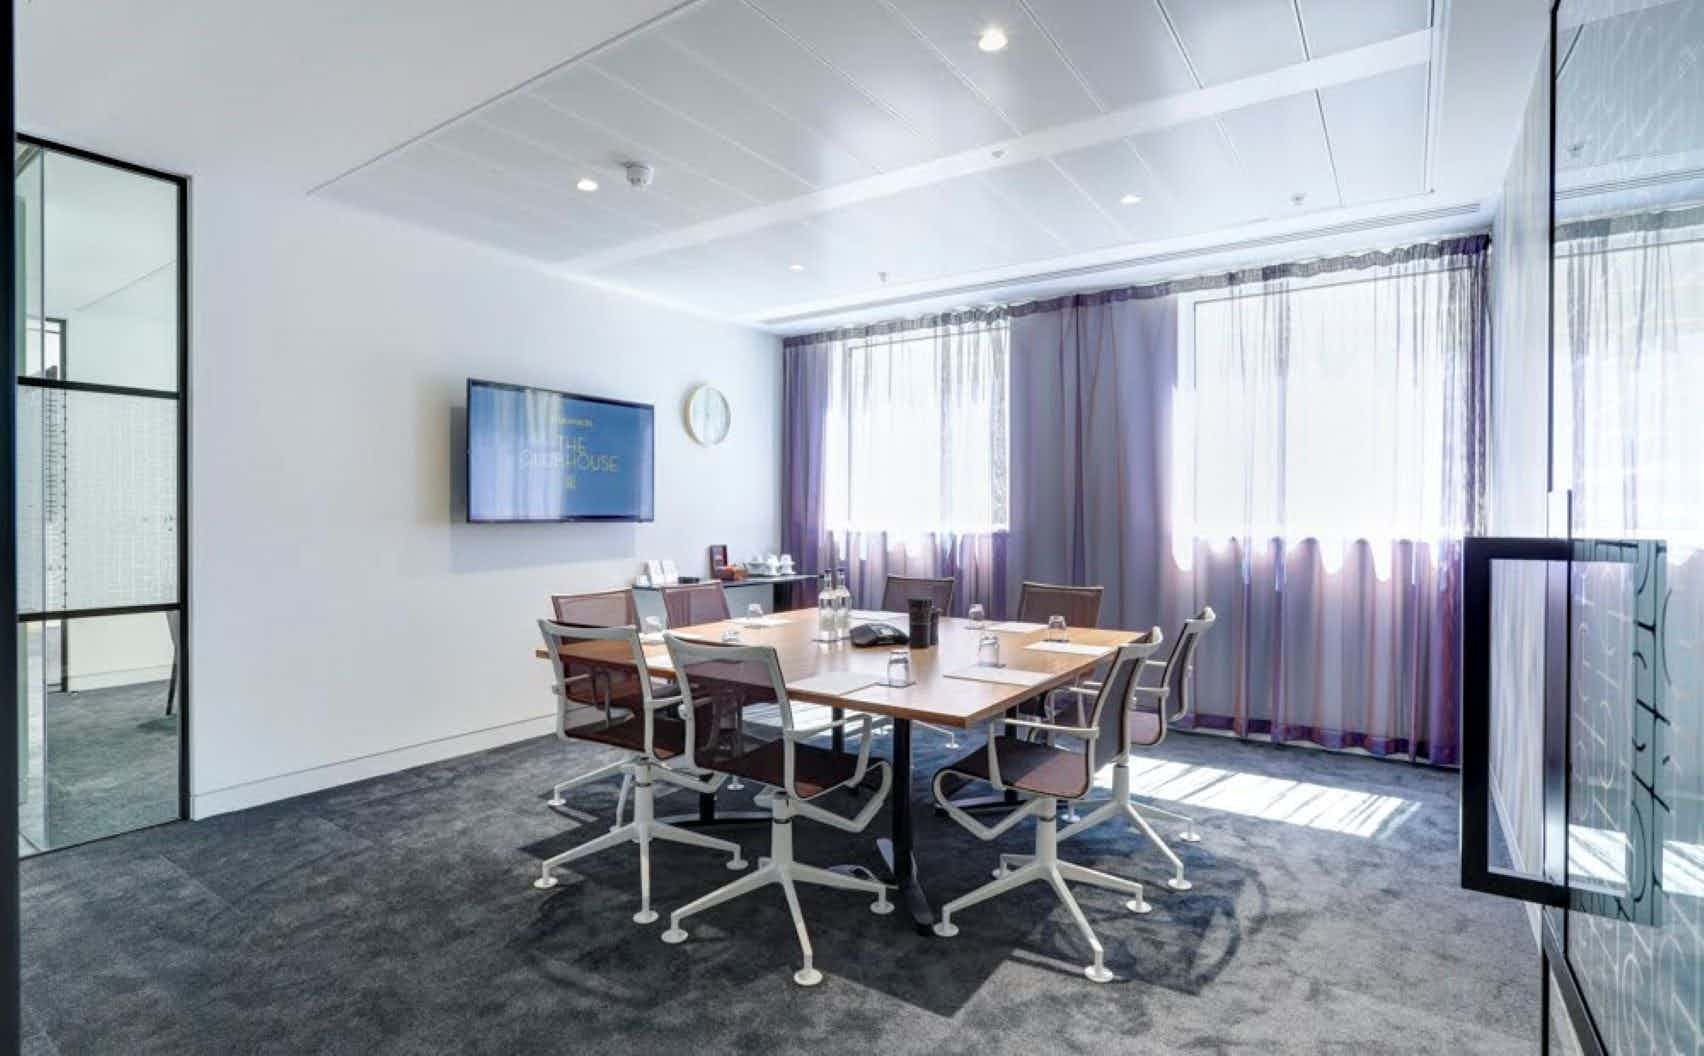 Meeting Room 4, The Clubhouse Holborn Circus